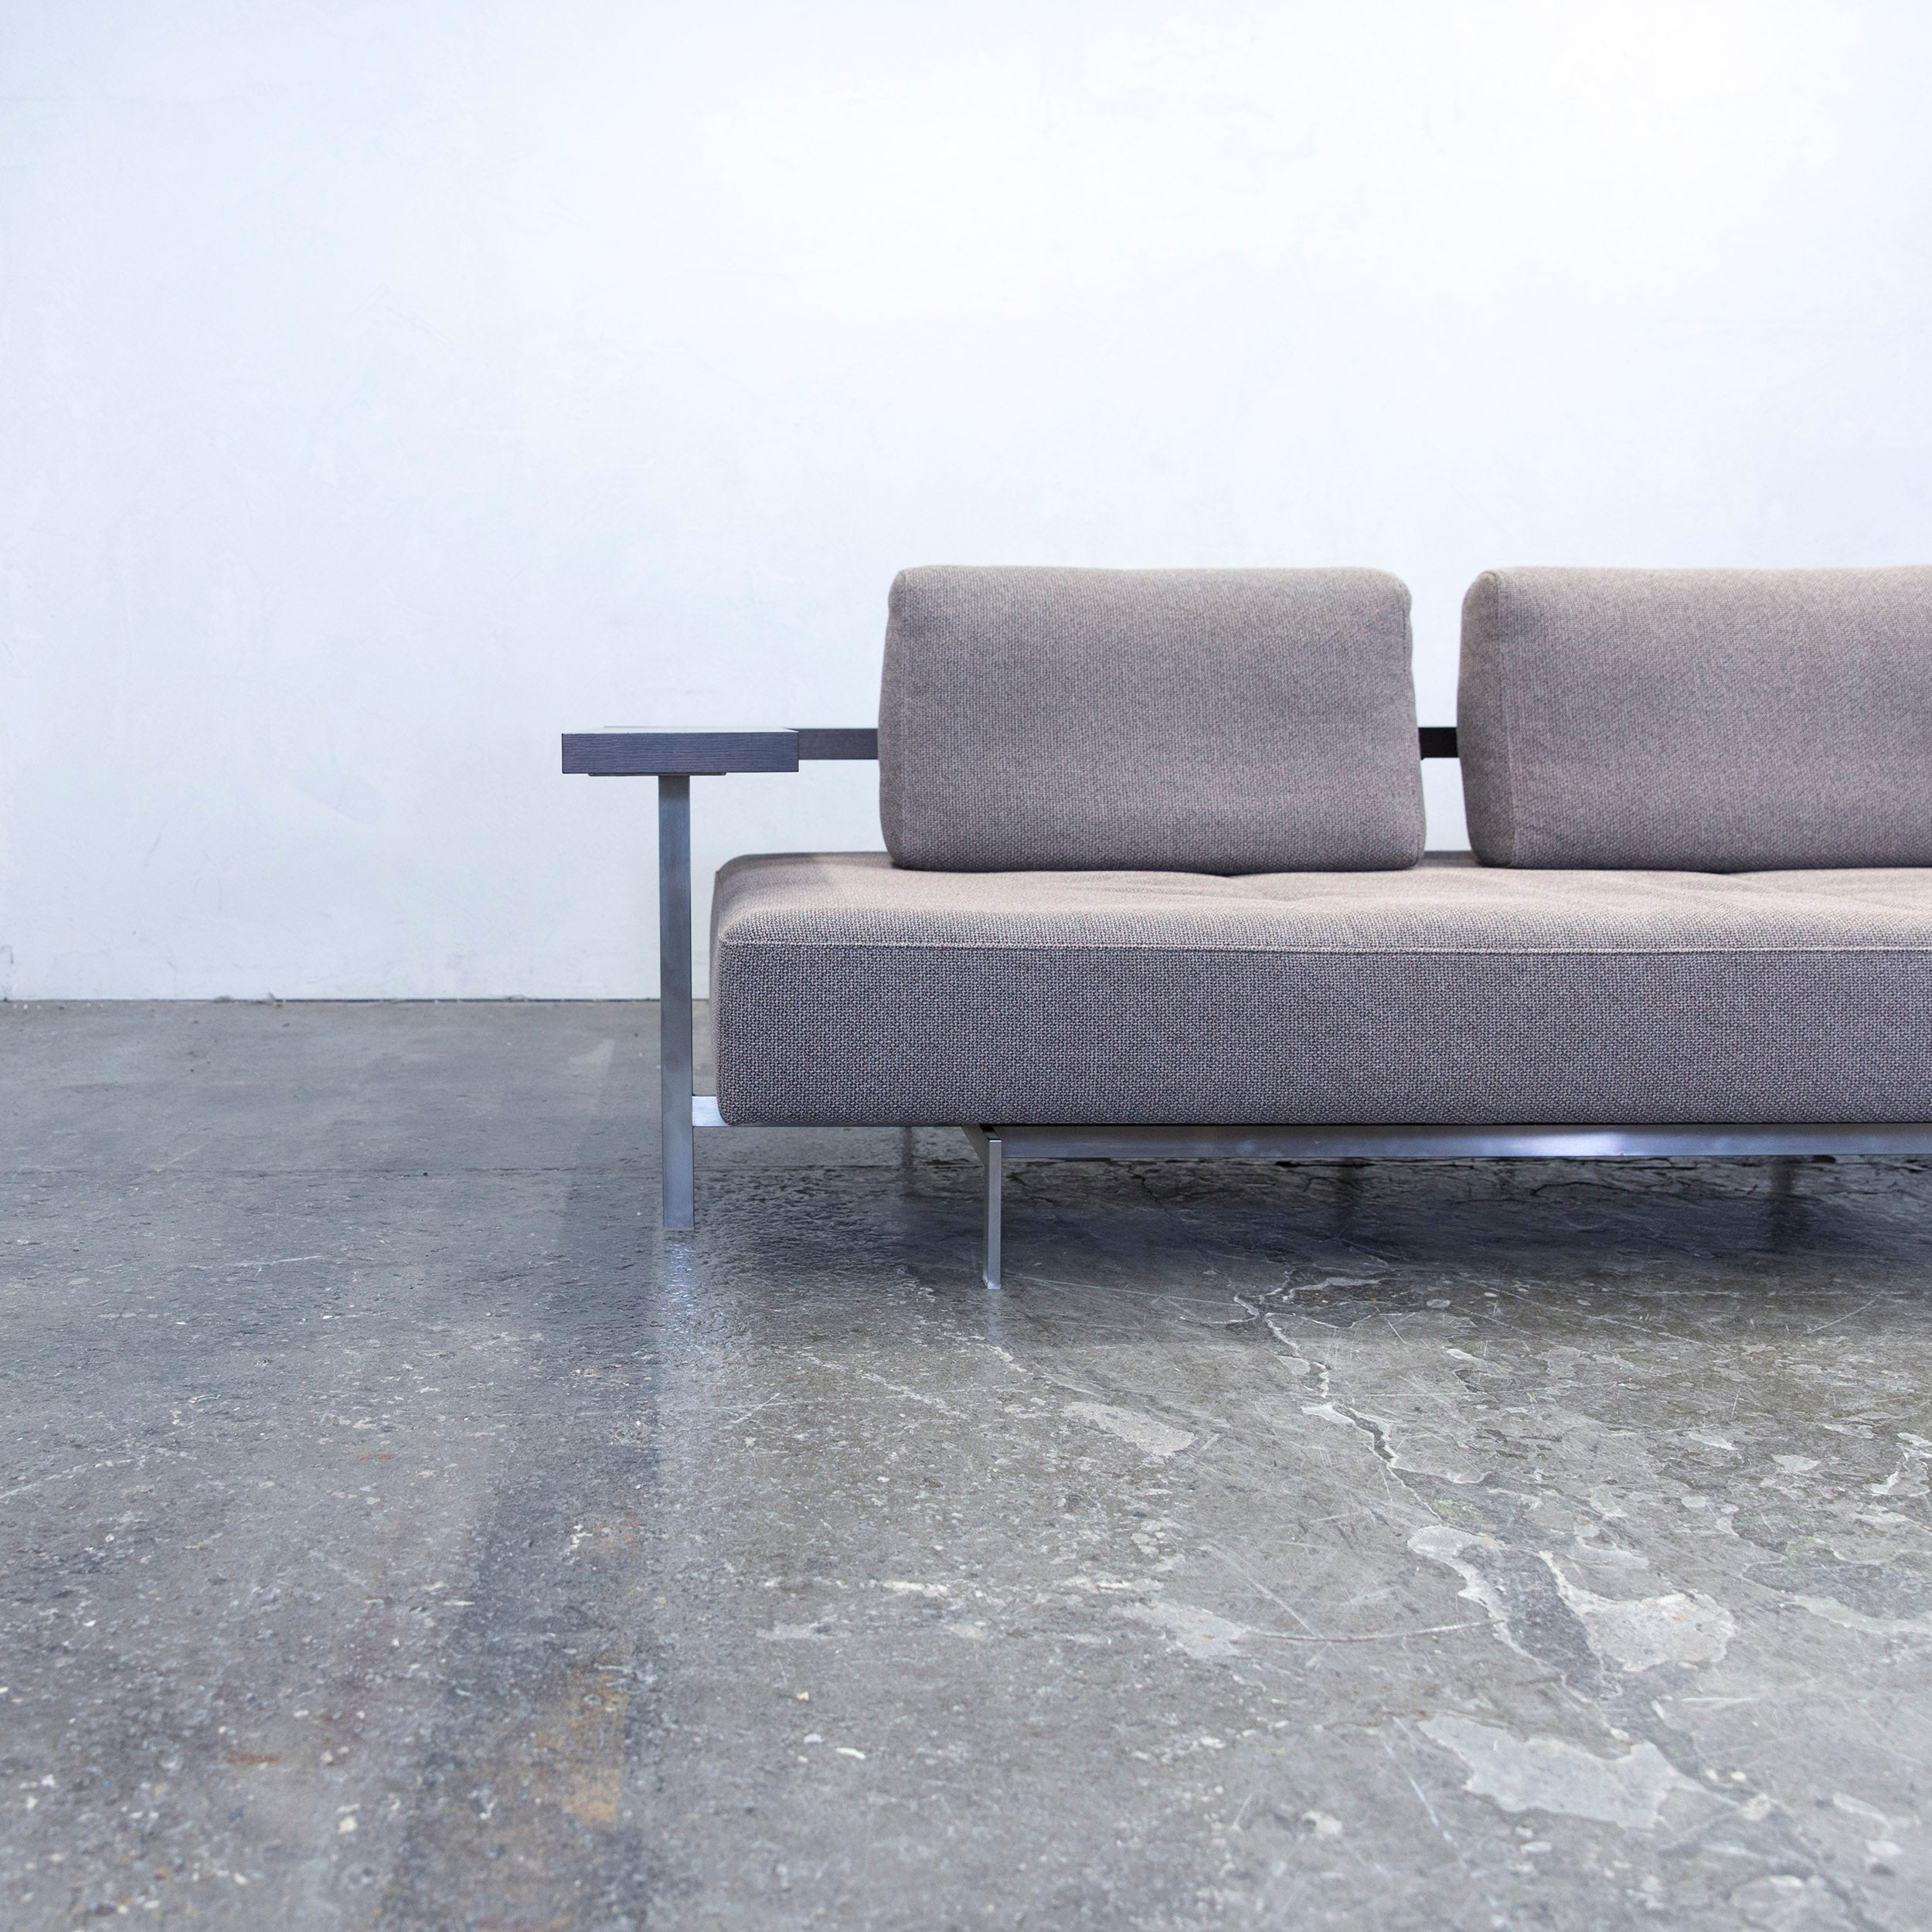 Sofa Couch Grau Designer Rolf Benz Dono 6100 Designer Sofa Grey Fabric Two Seat Couch Modern